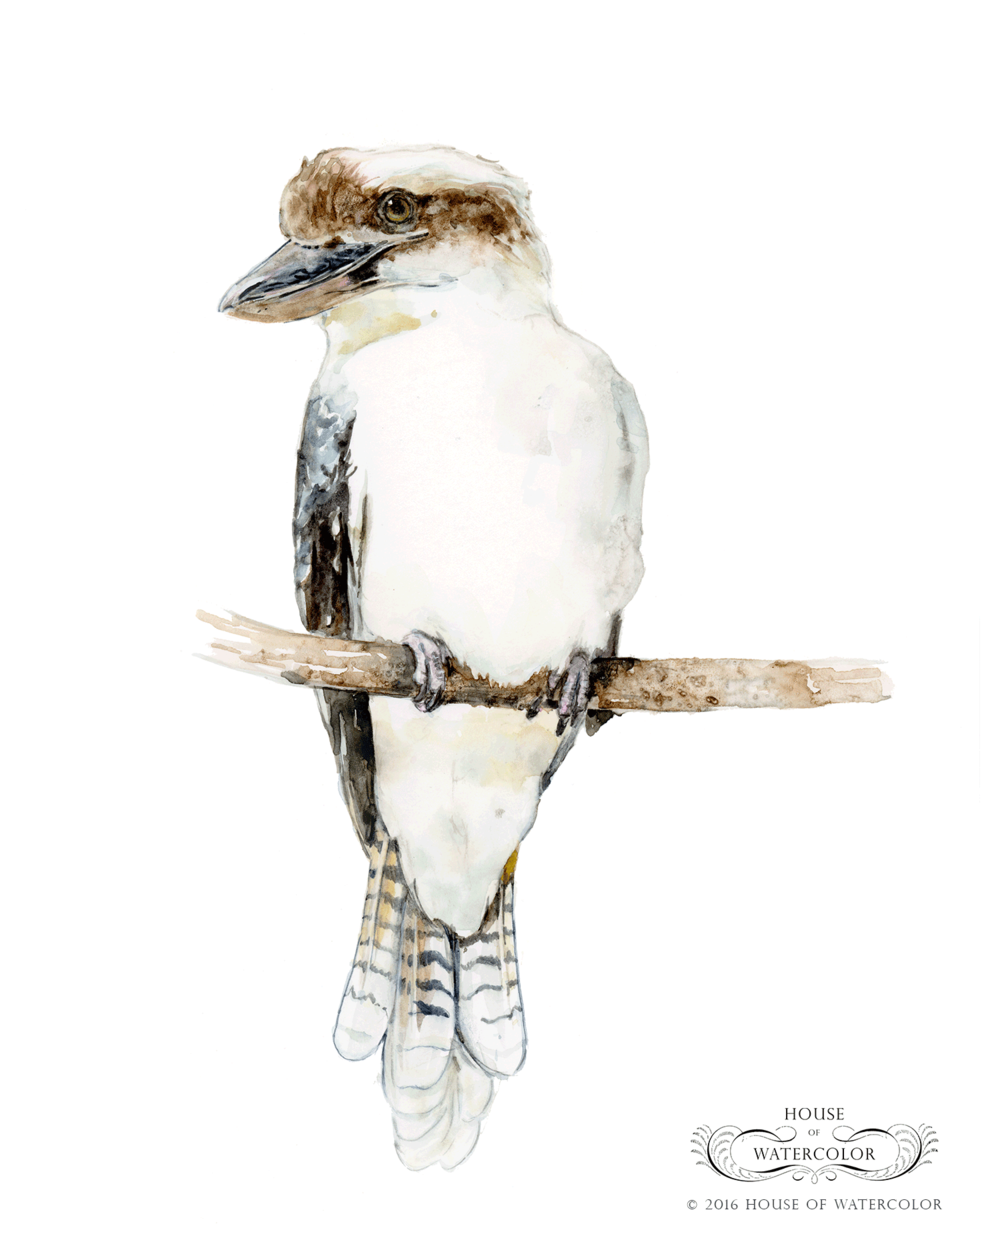 House-of-Watercolor-Kookaburra-Portfolio.png